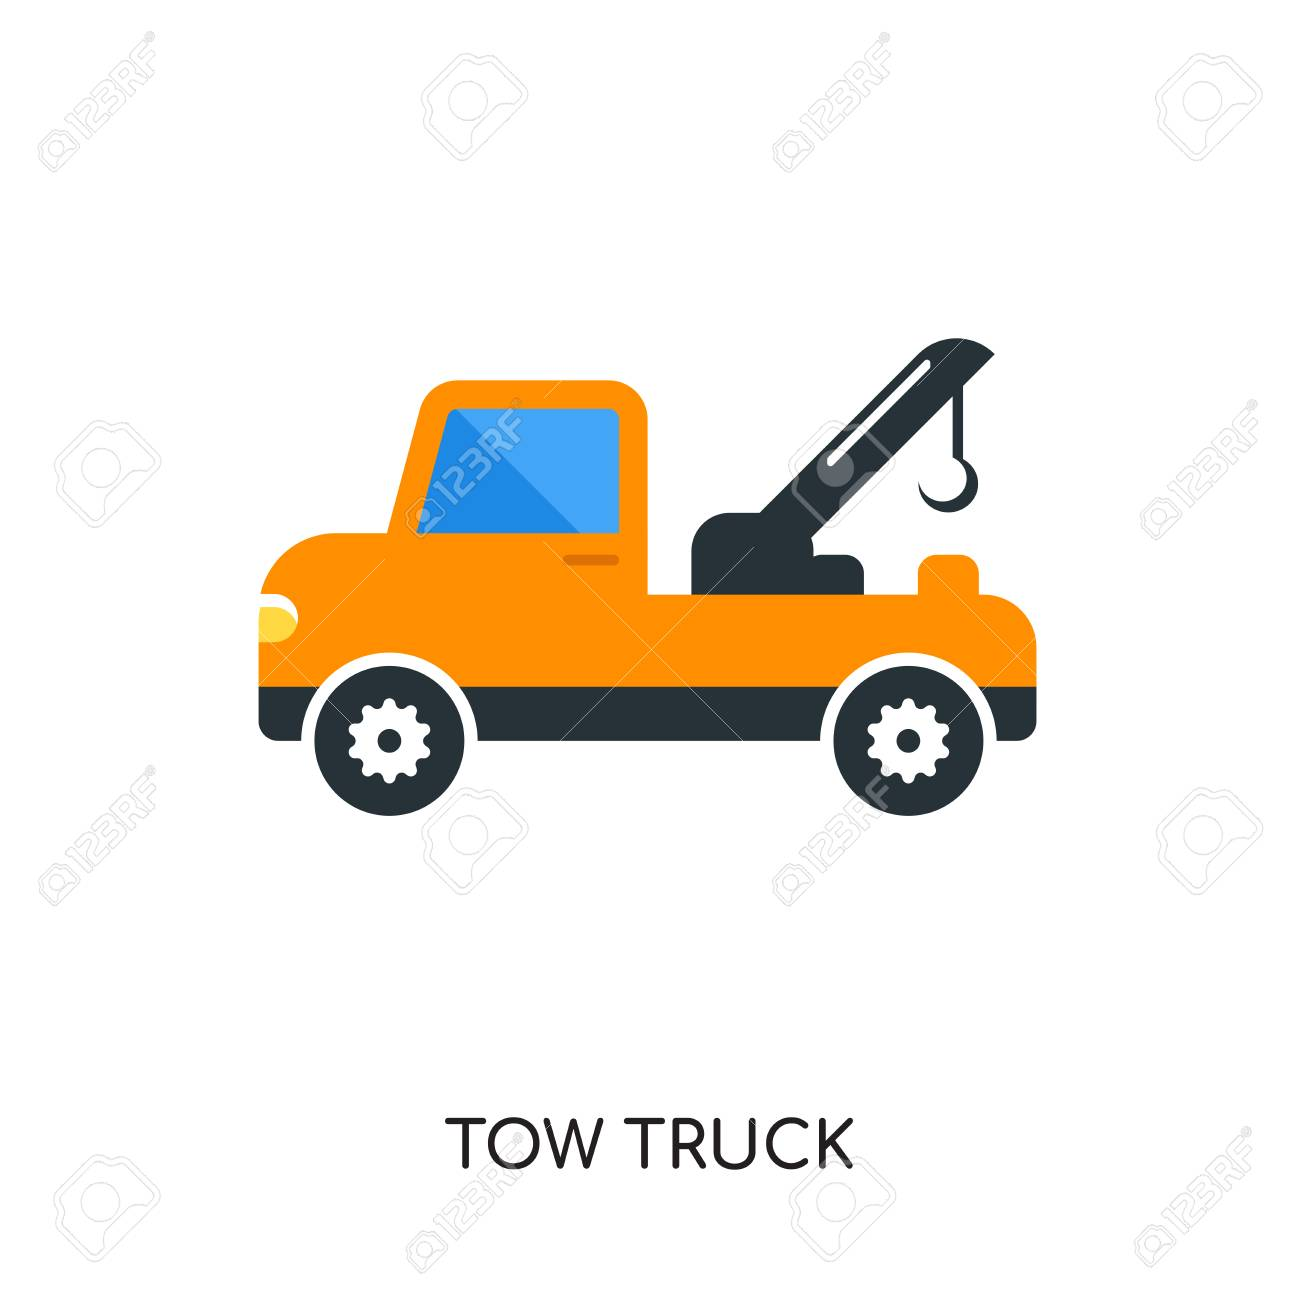 tow truck logo isolated on white background for your web and rh 123rf com tow truck logo free tow truck logo creator